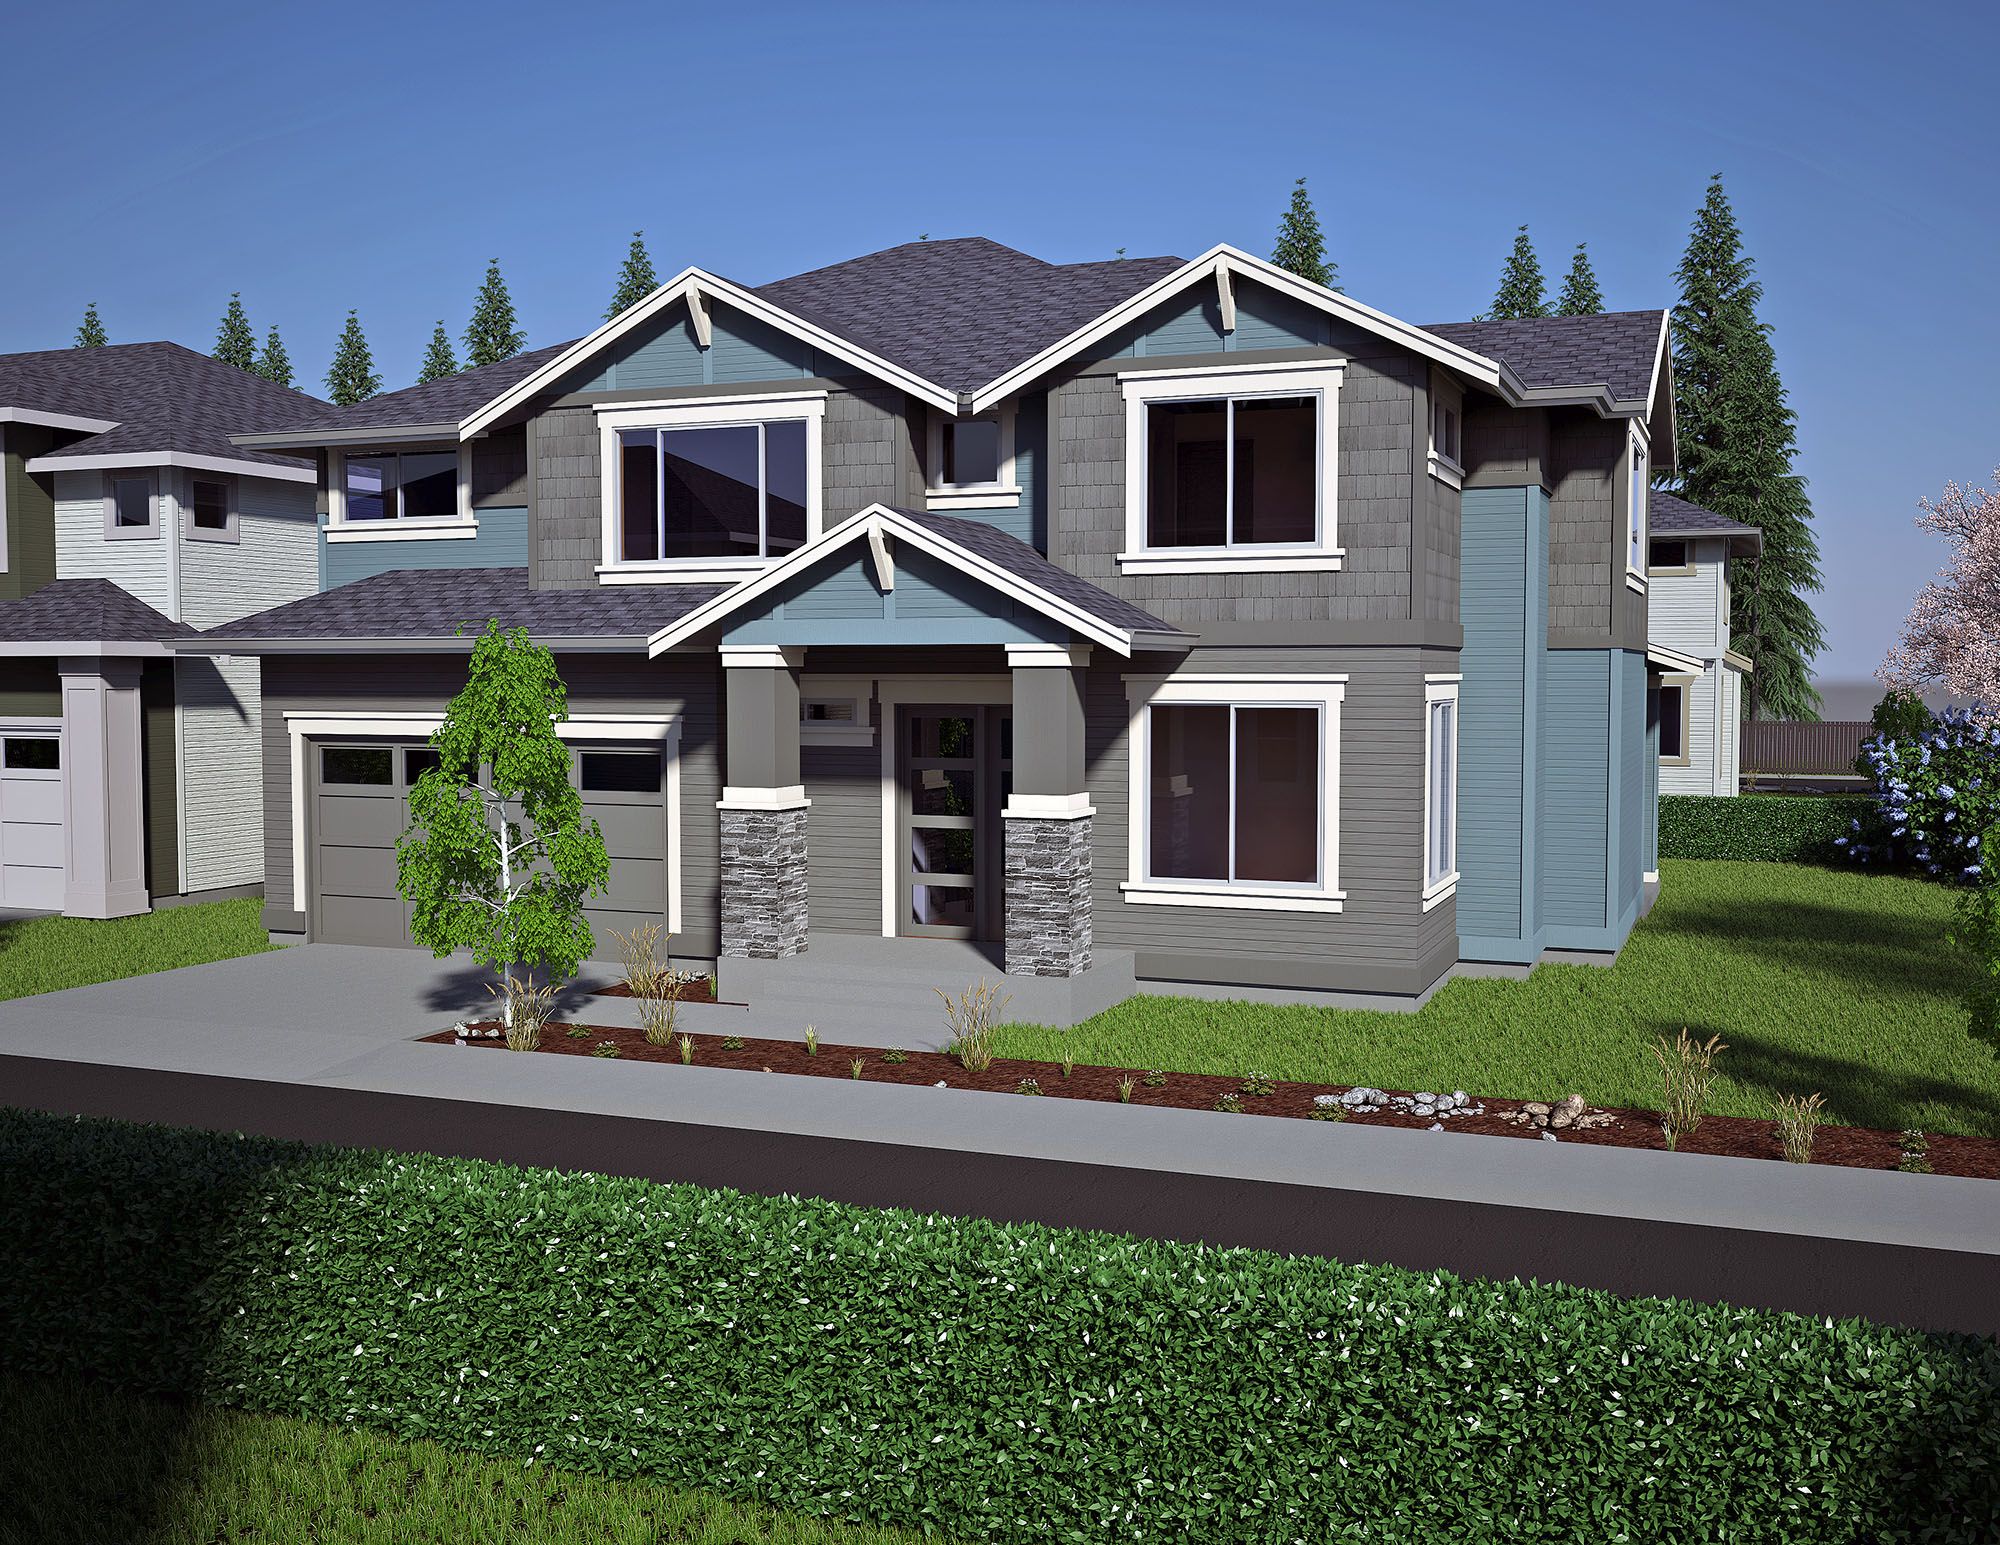 720 olympia ave ne lot 4 custom homes seattle bellevue for Olympia home builders